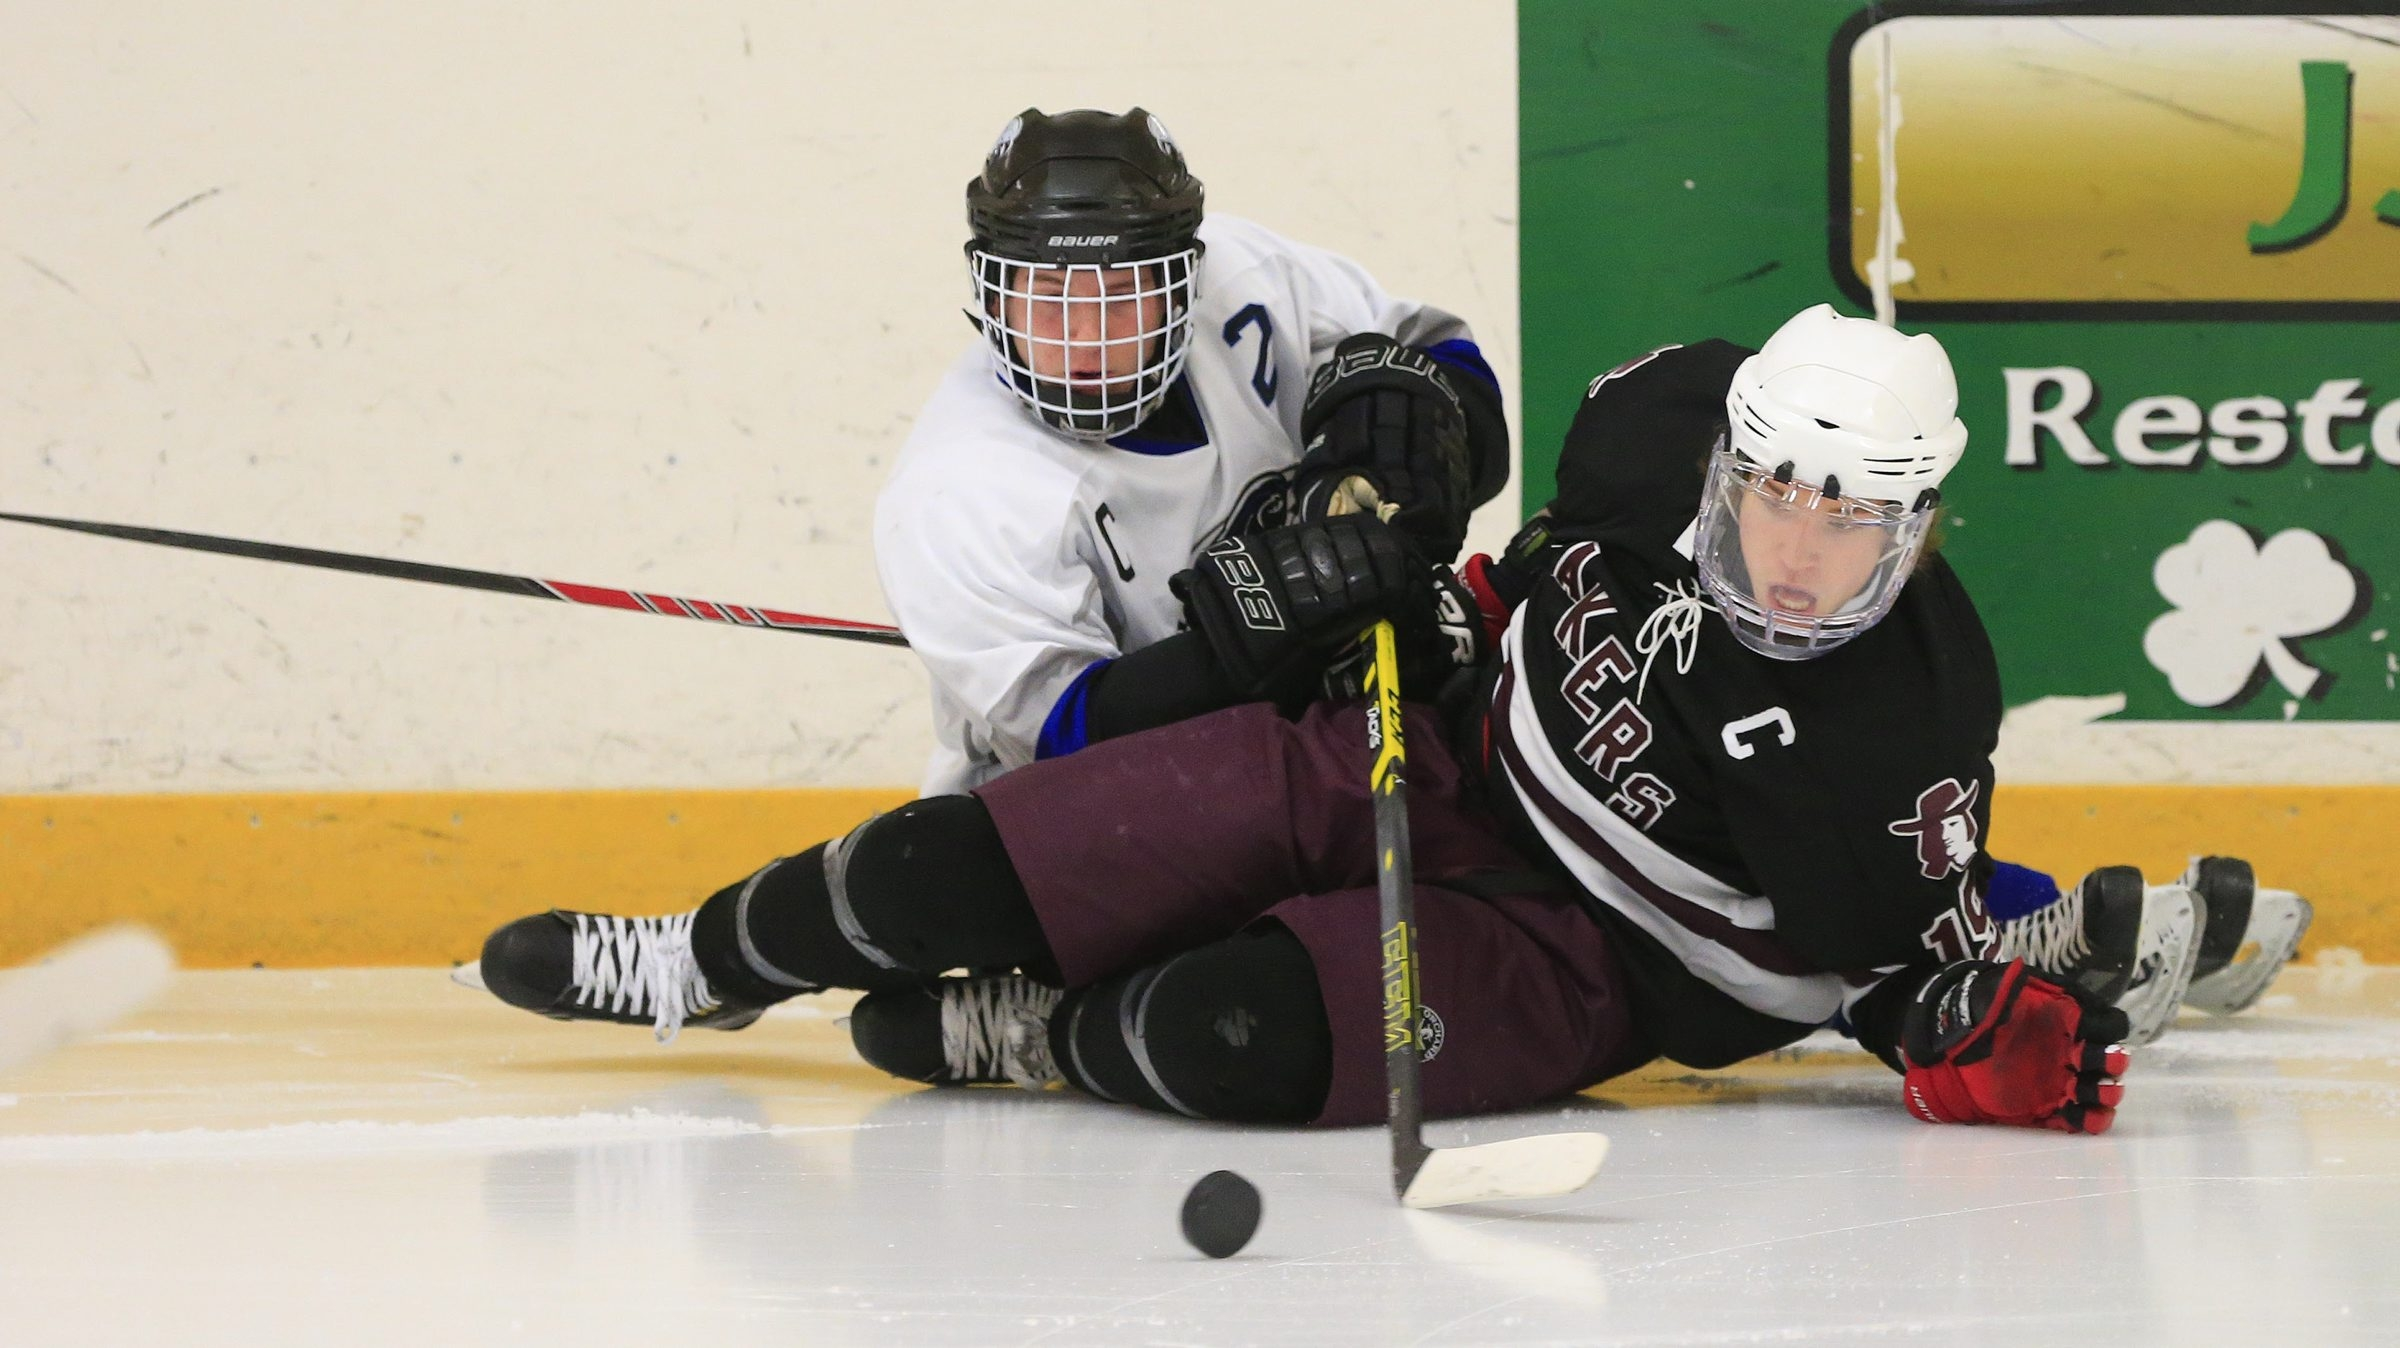 The plan is for games now played at the Hamburg Town Rink, such as this one between Orchard Park and Frontier, would move to the new sports complex. (Harry Scull Jr./Buffalo News file photo)